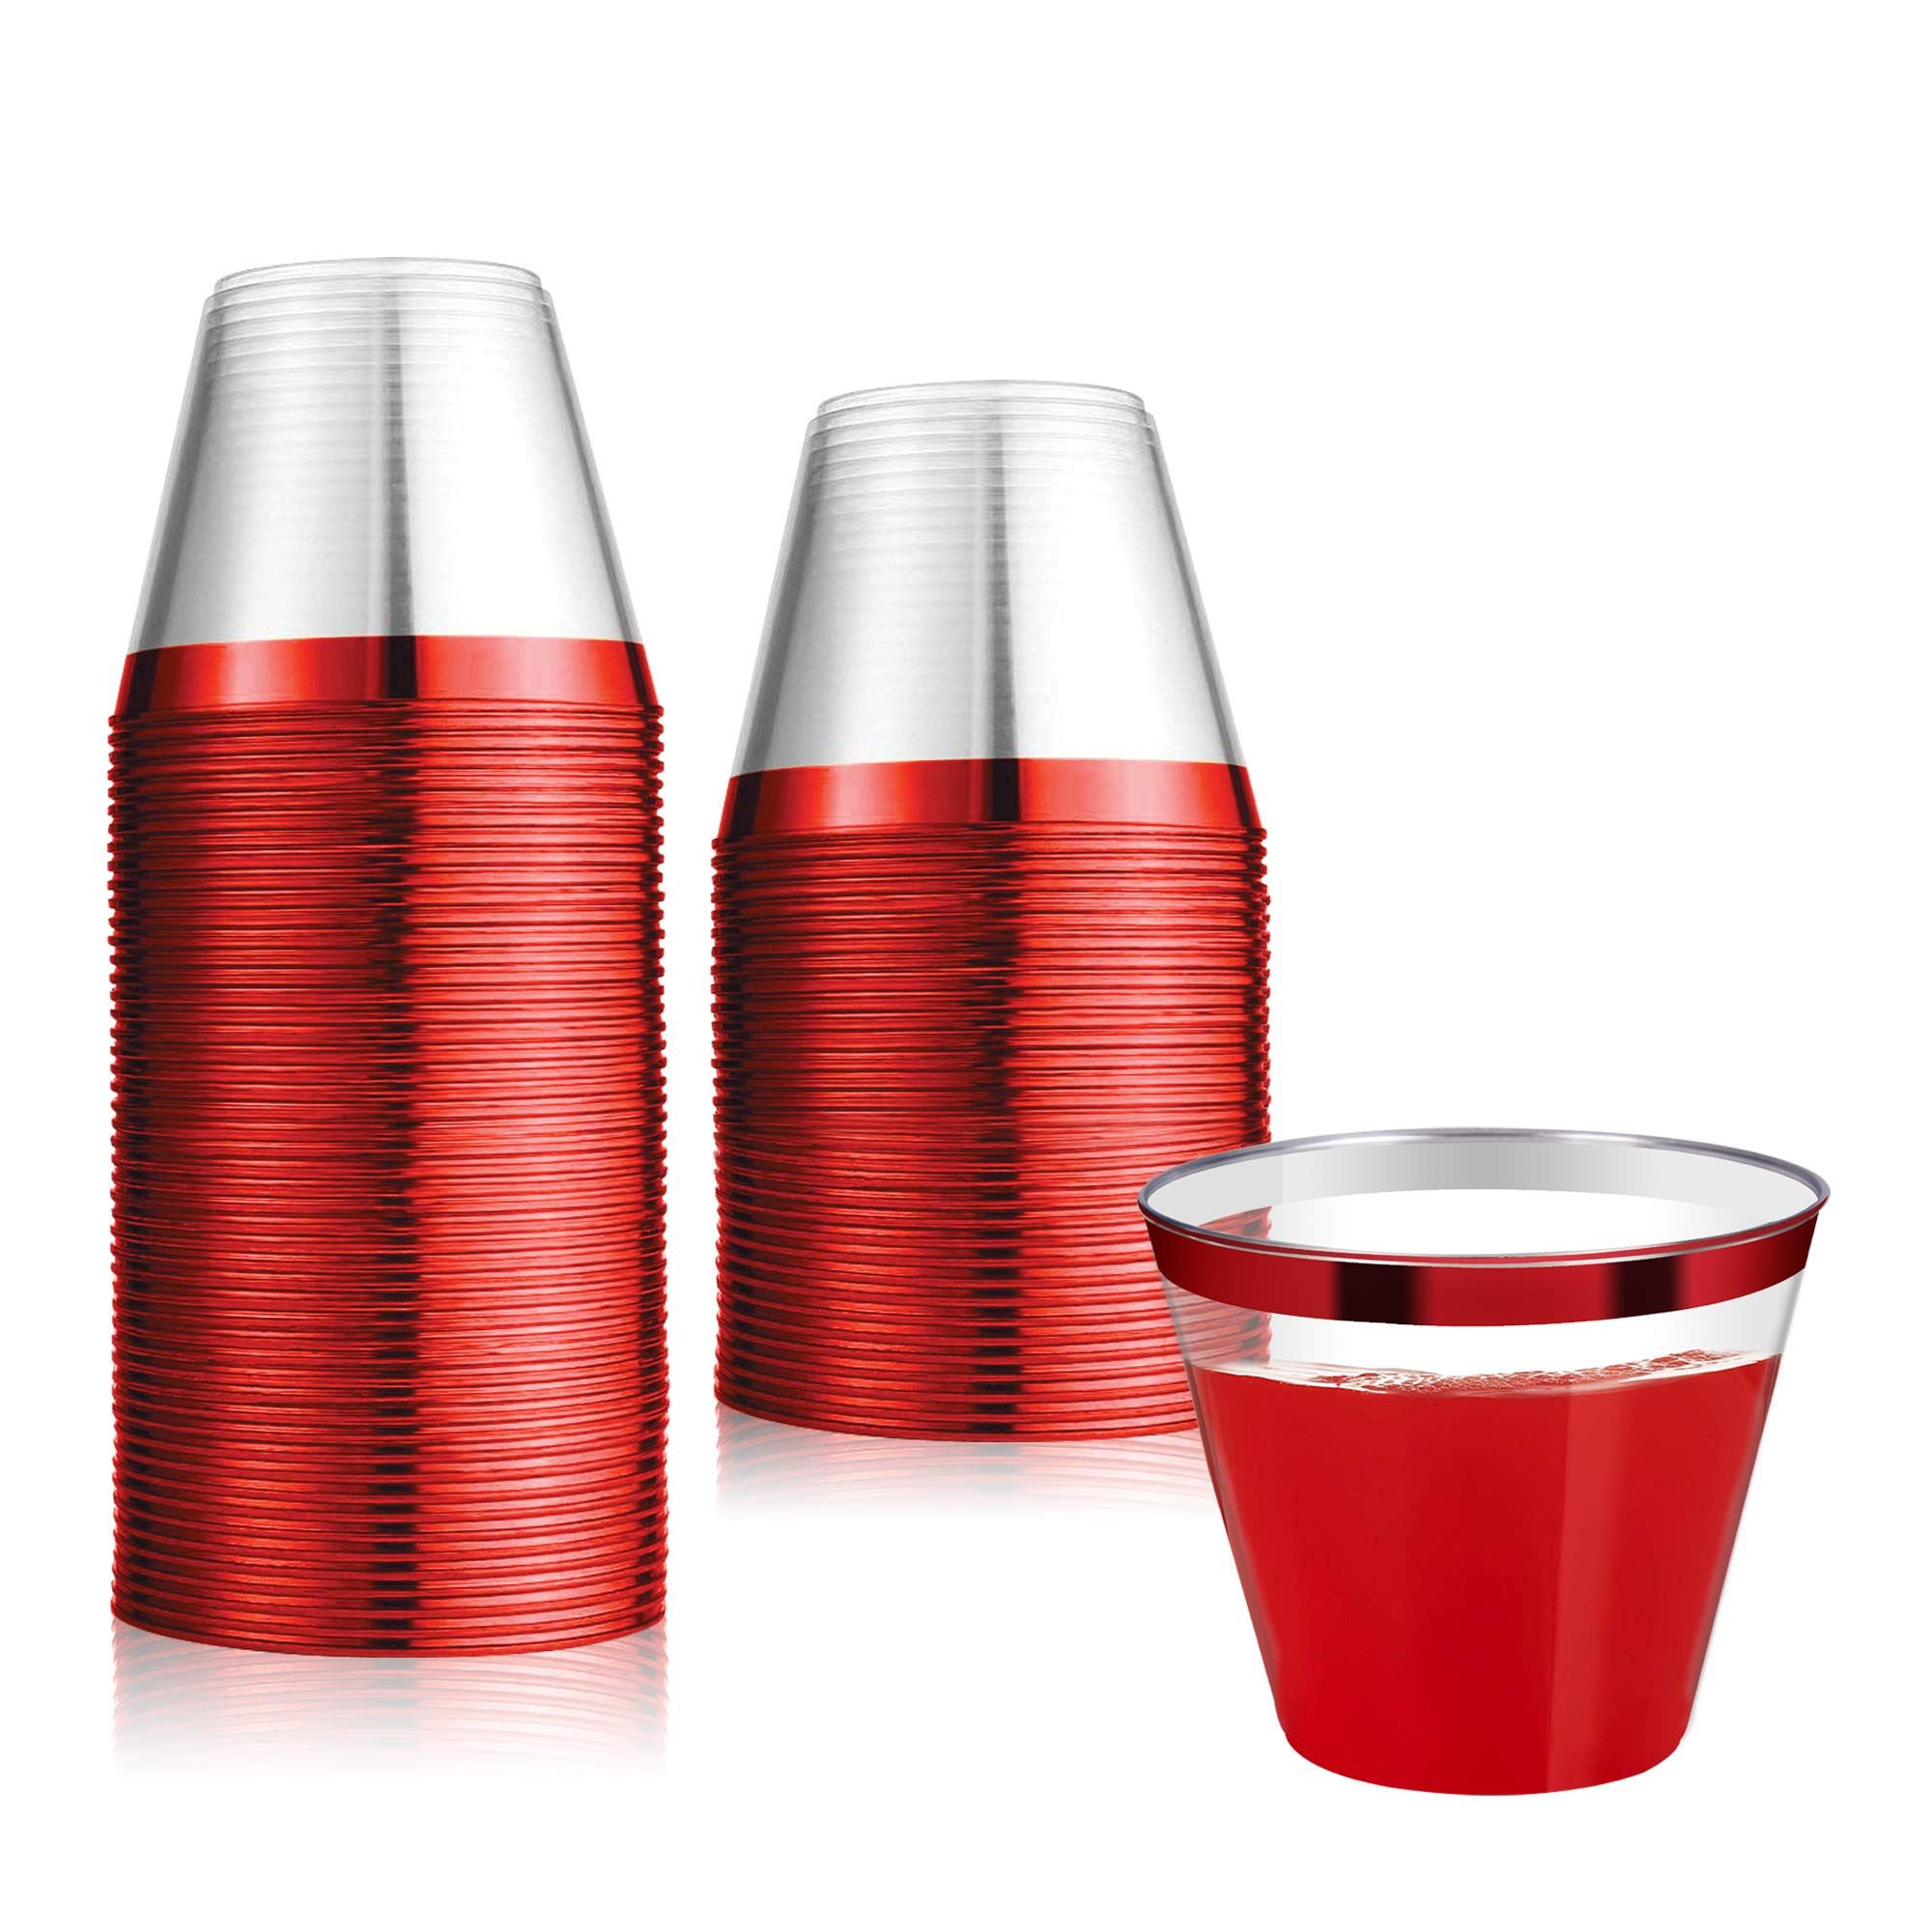 100 Count 9oz Disposable Clear Cup-Red Trim Cup/Old Fashioned Tumblers/Plastic Wedding Cups/Fancy Party Cups